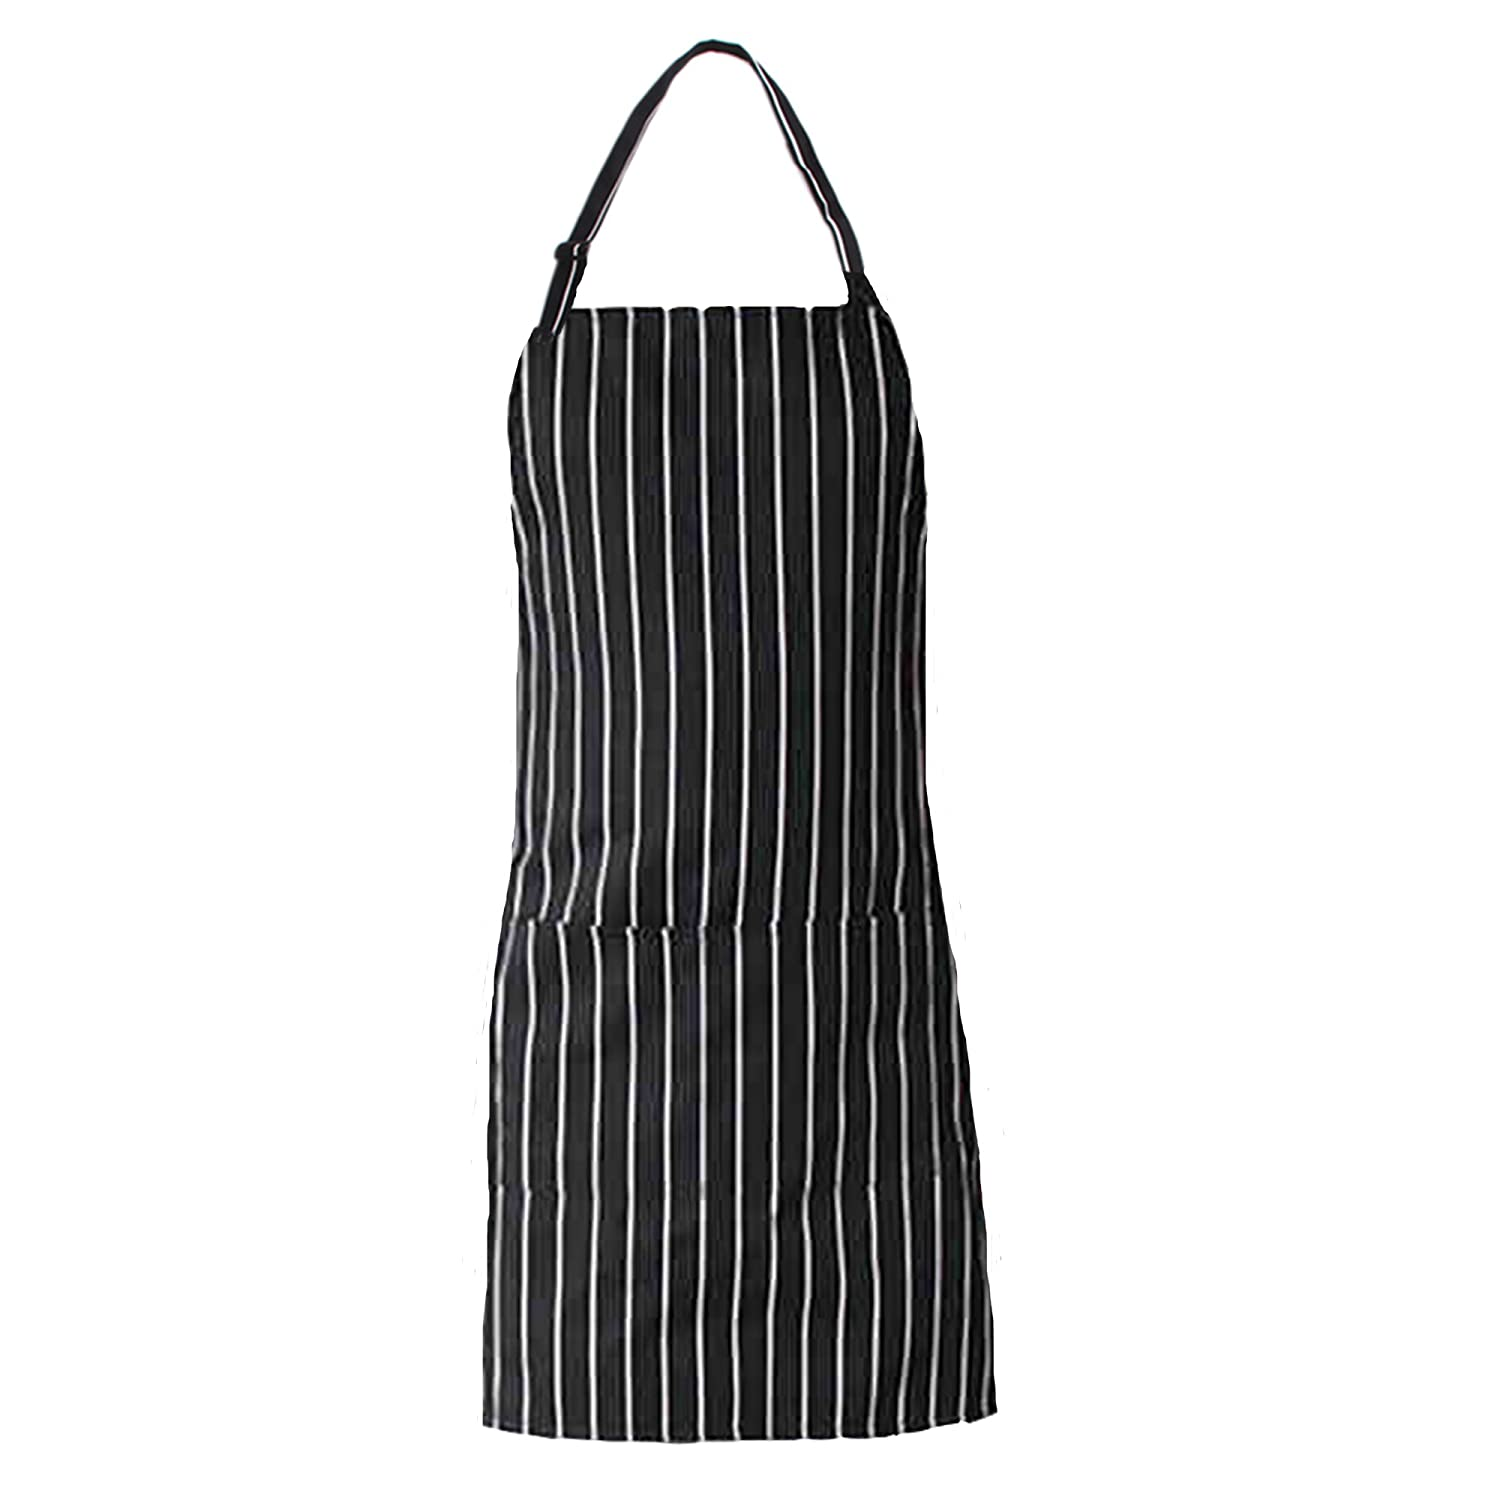 NormCorer Fashion Unisex Adjustable Pinstripe Bib Apron With Pockets- Extra Long Ties For Commercial Grade| Kitchenware| Barware- Black/White Navy Pinstripe (1pcs) (white/black-rectangular pocket)